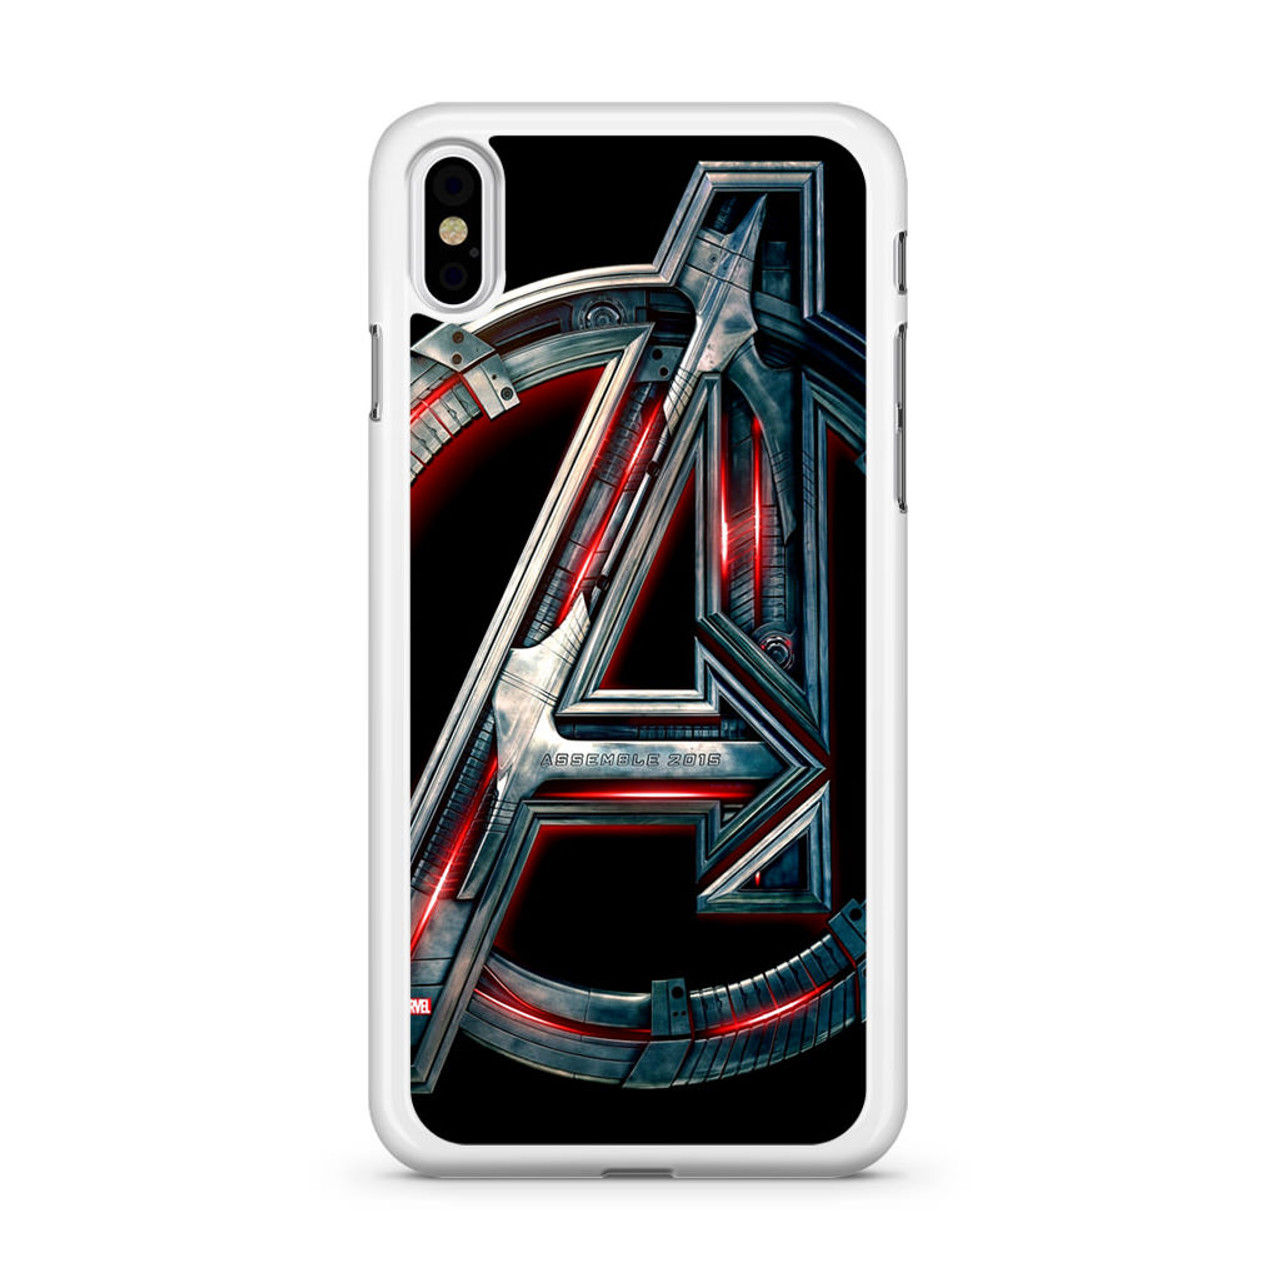 The Avengers Age Of Ultron Logo Assemble 2015 iphone case